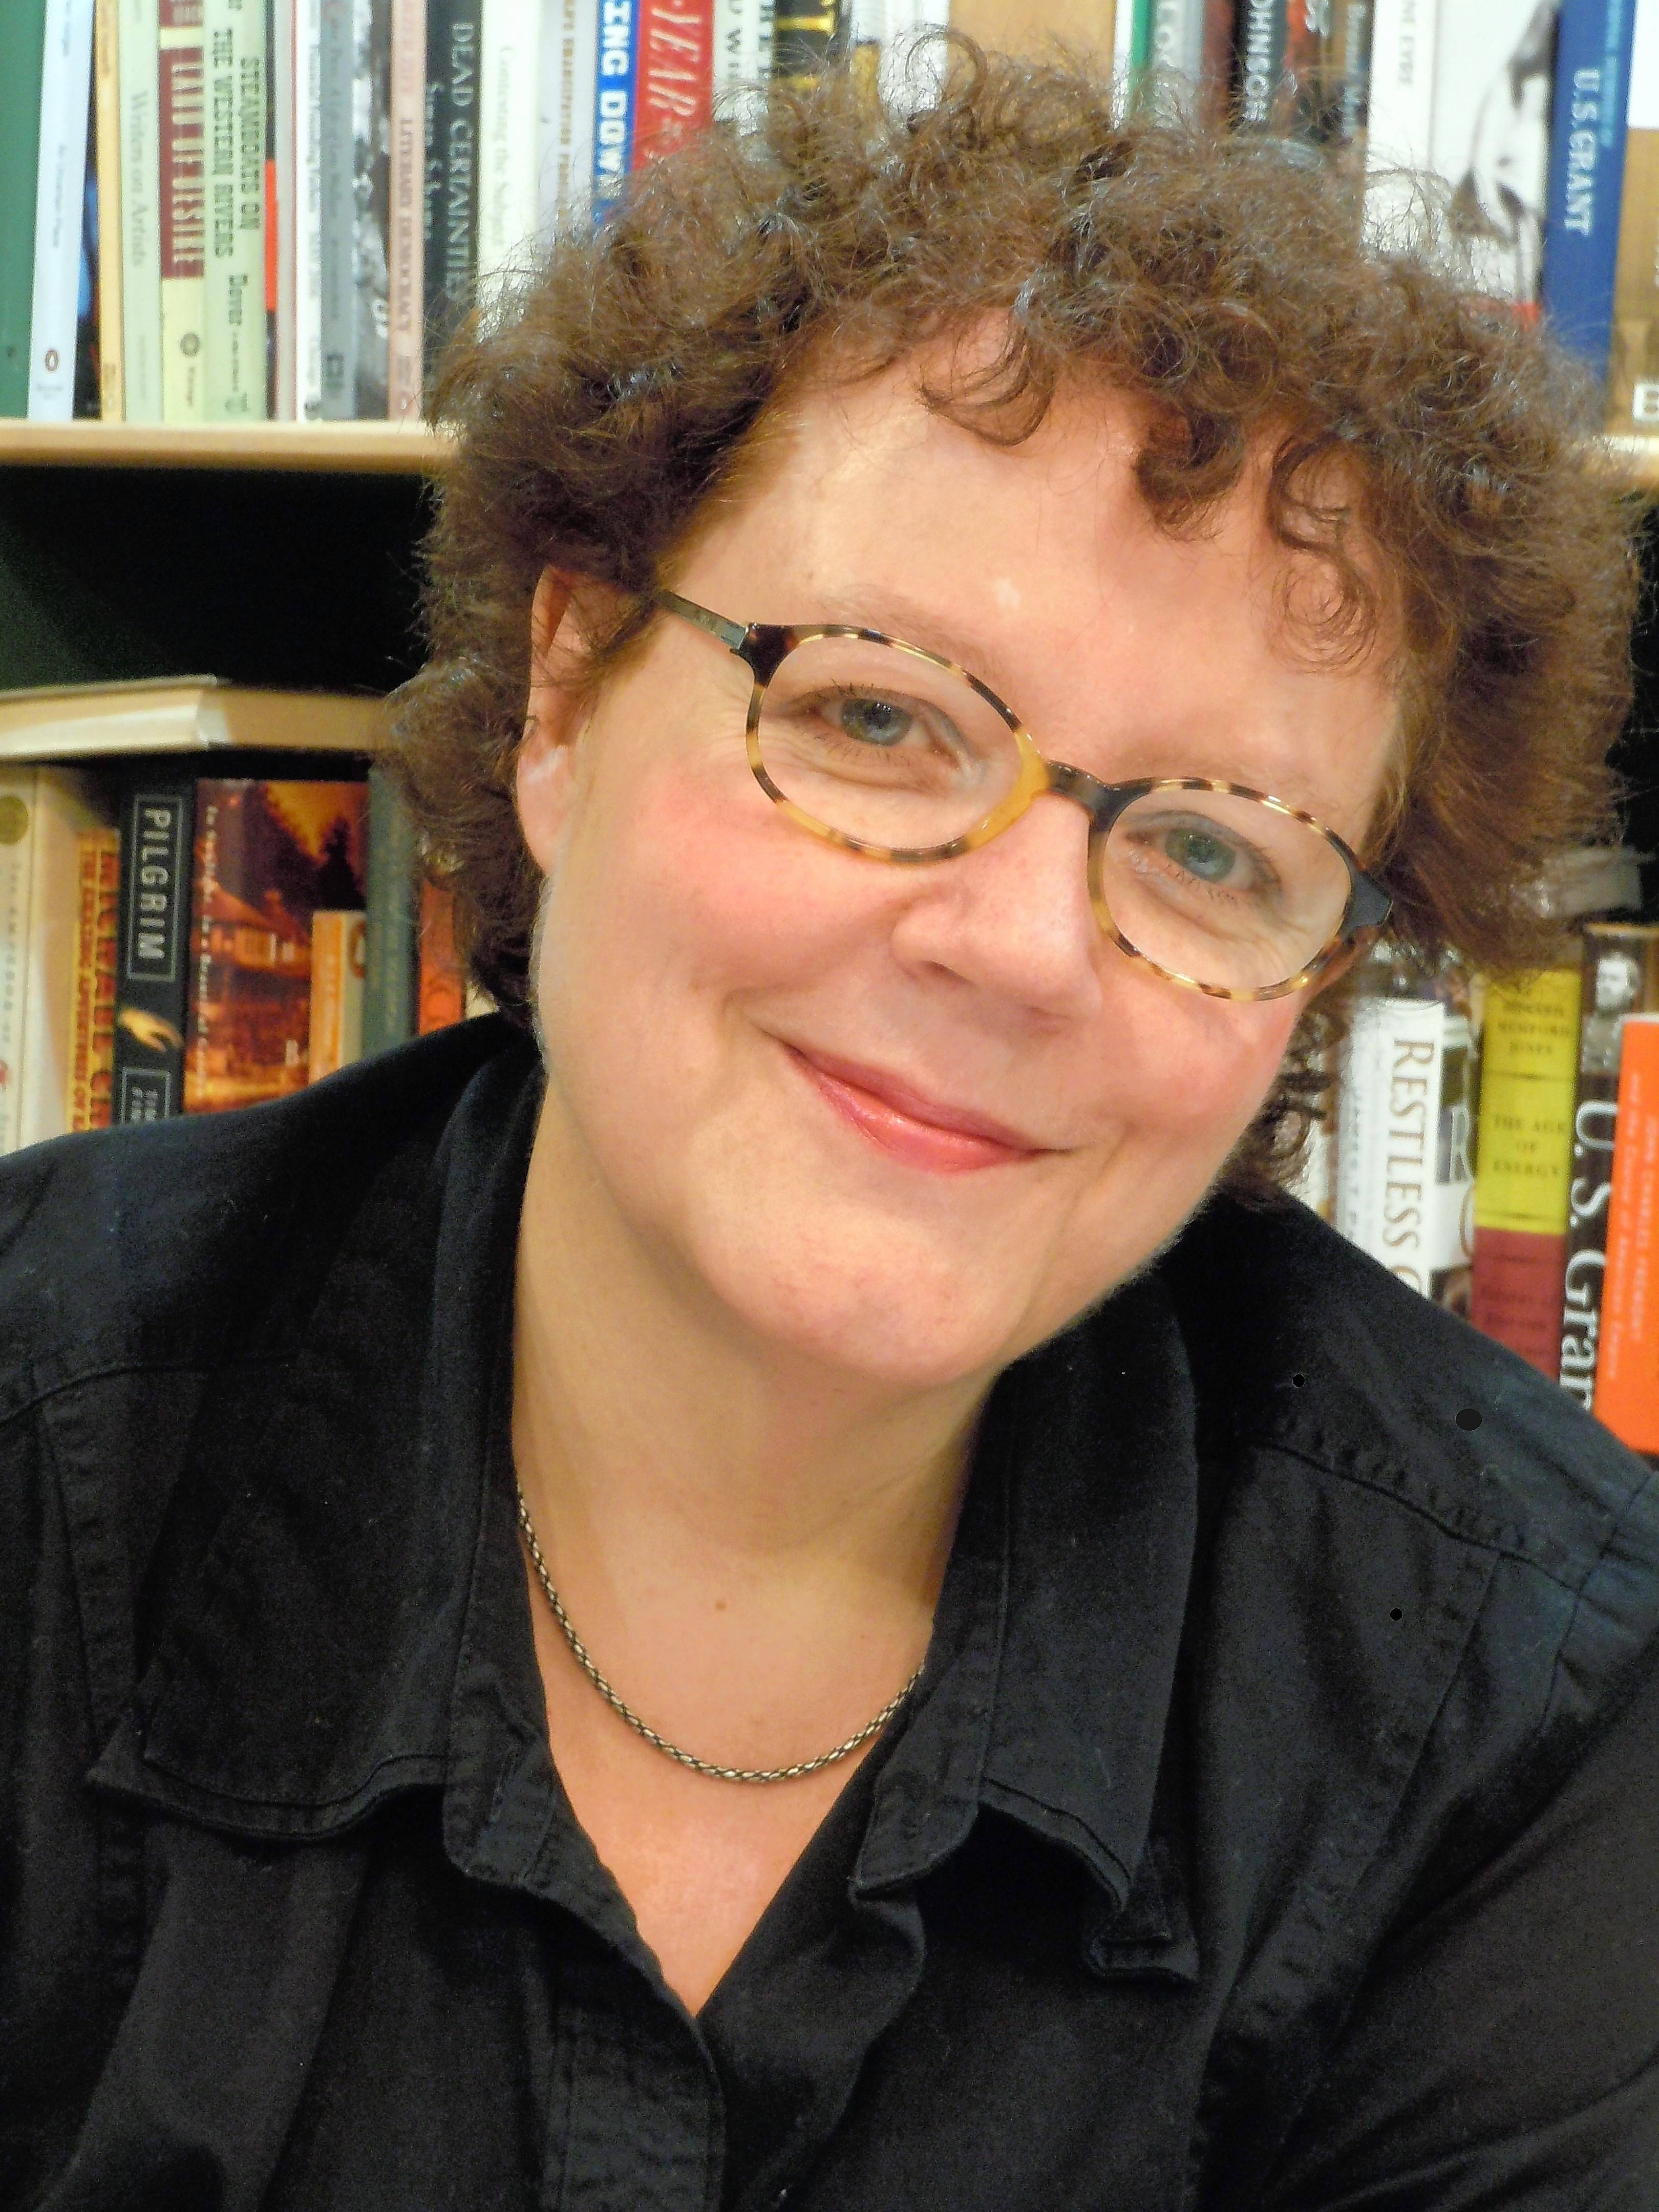 Pulitzer Prize-winner Julia Keller signs copies of her newest crime-fiction title Wednesday, Aug. 23, at Anderson's Bookshop in Naperville.